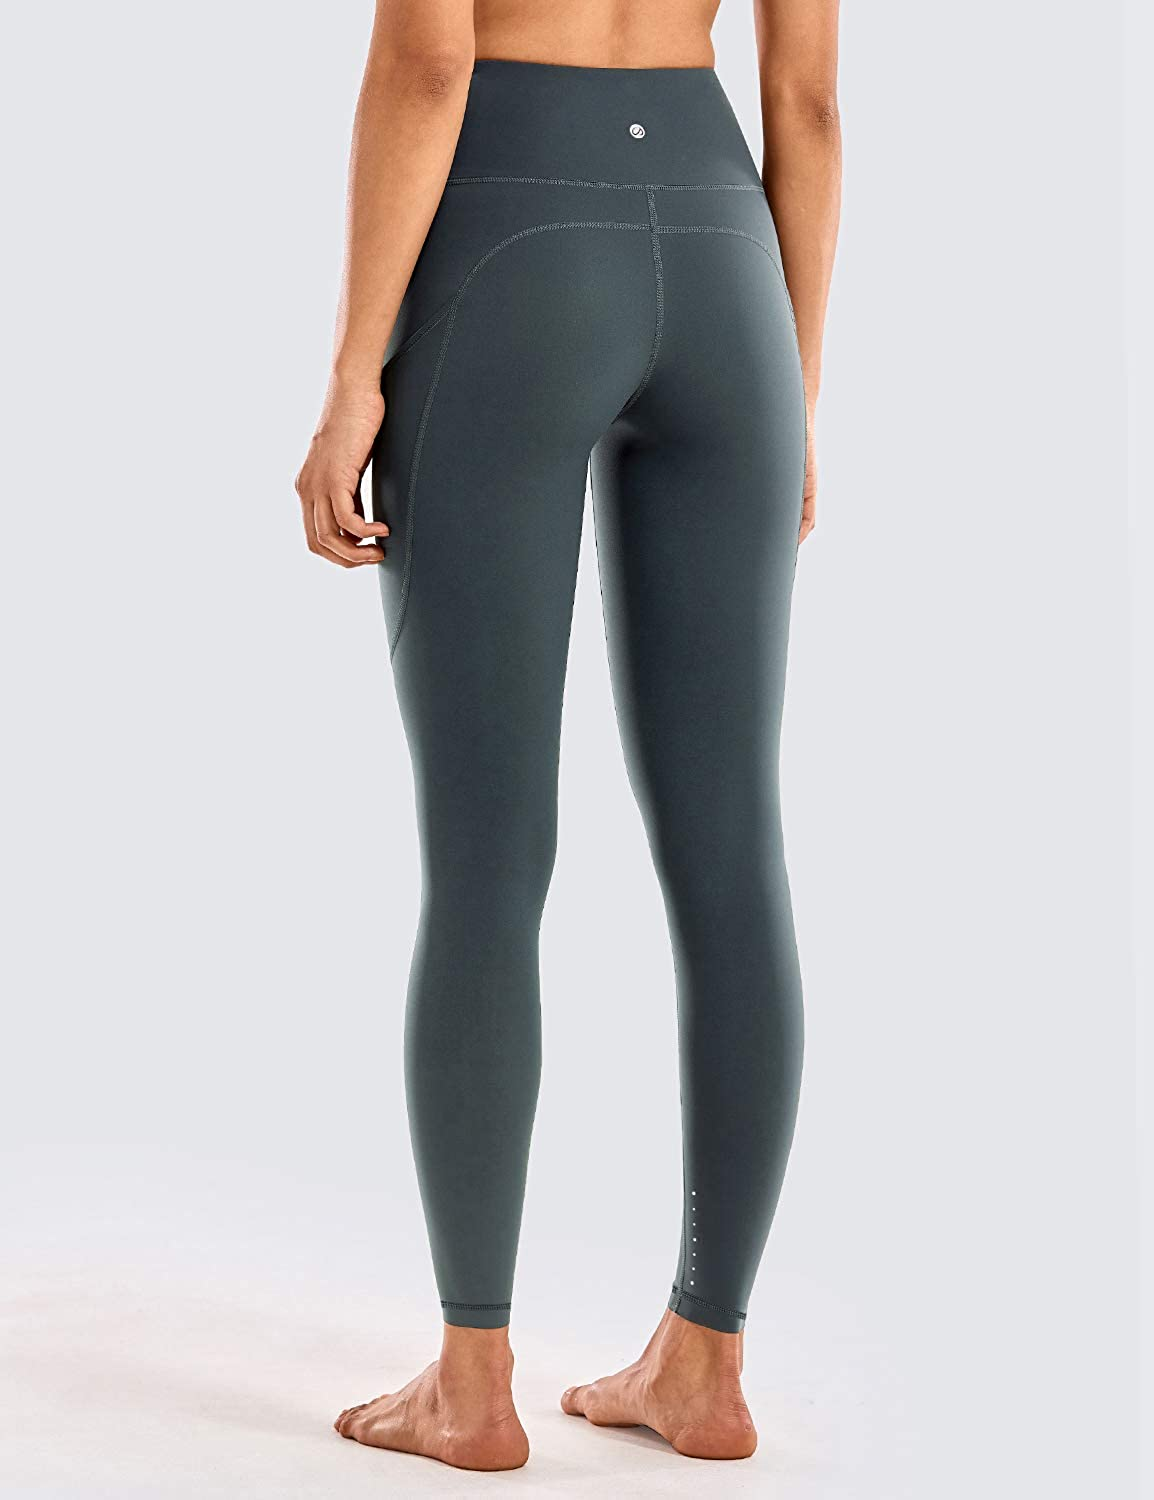 CRZ YOGA Womens Breathable Luxury Naked Feeling High Waisted Yoga Pants with Pockets Athletic Leggings-28 inches